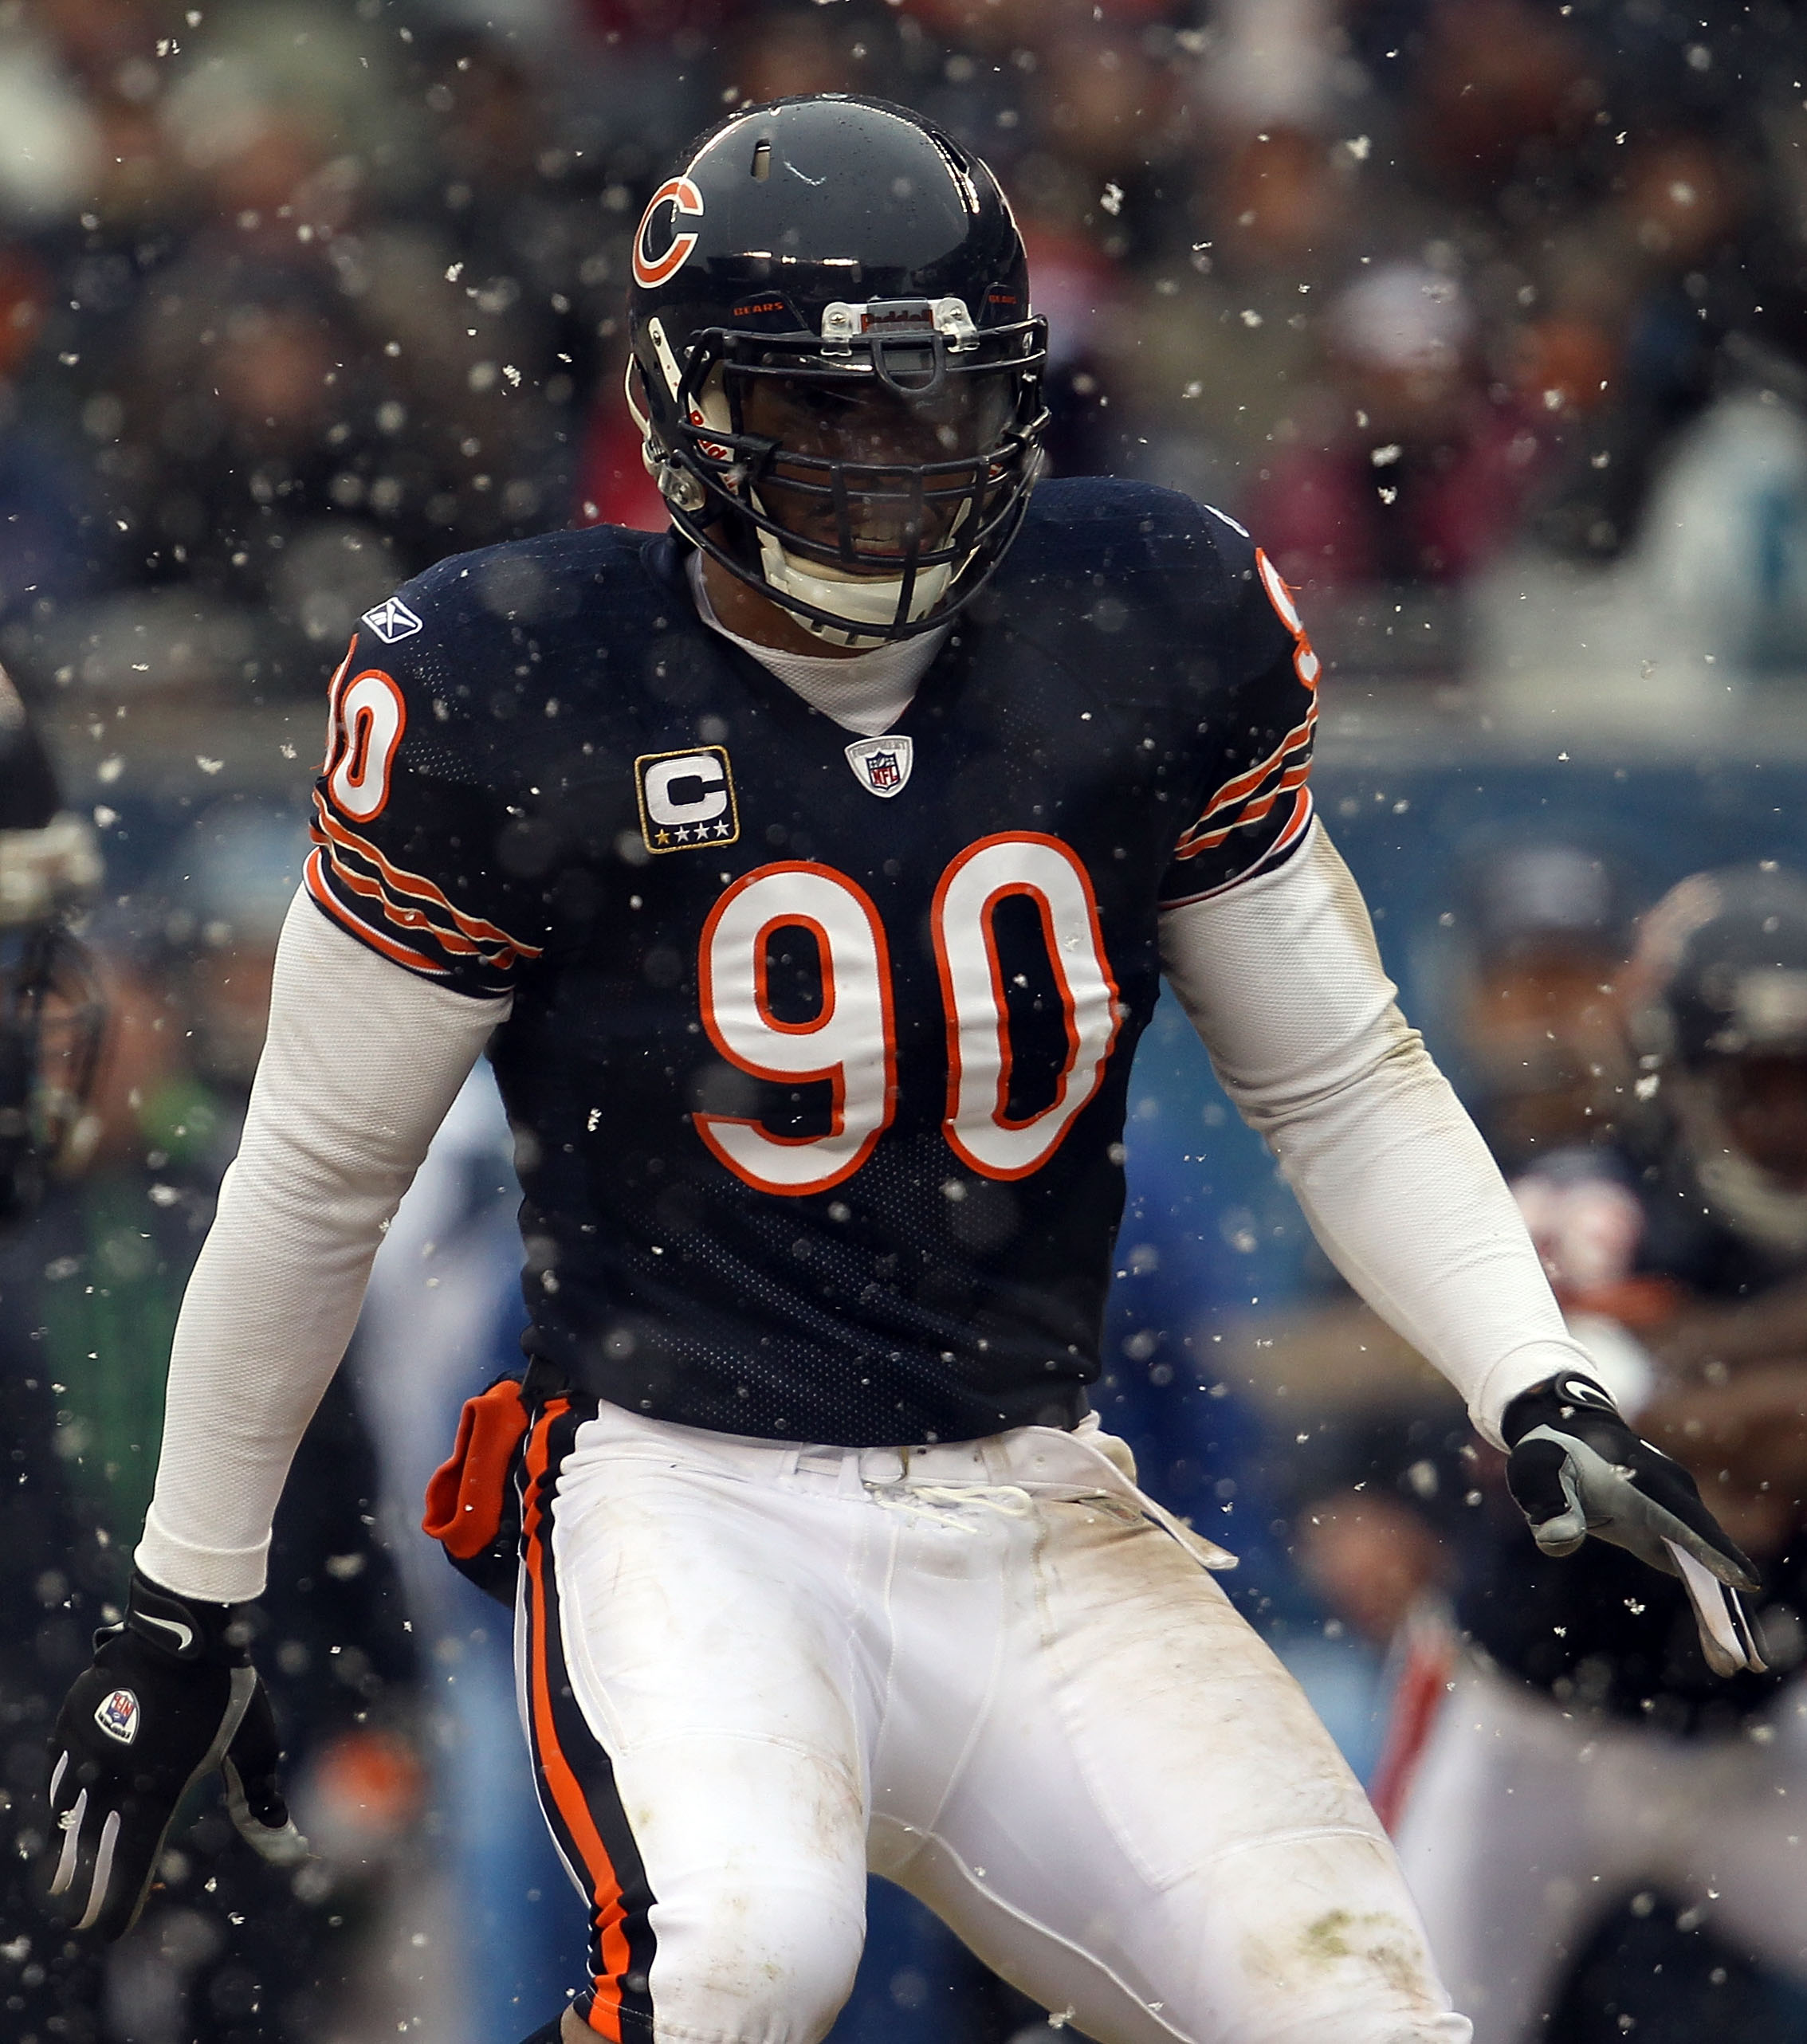 CHICAGO, IL - JANUARY 16:  Julius Peppers #90 of the Chicago Bears looks on against the Seattle Seahawks in the 2011 NFC divisional playoff game at Soldier Field on January 16, 2011 in Chicago, Illinois.  (Photo by Jonathan Daniel/Getty Images)